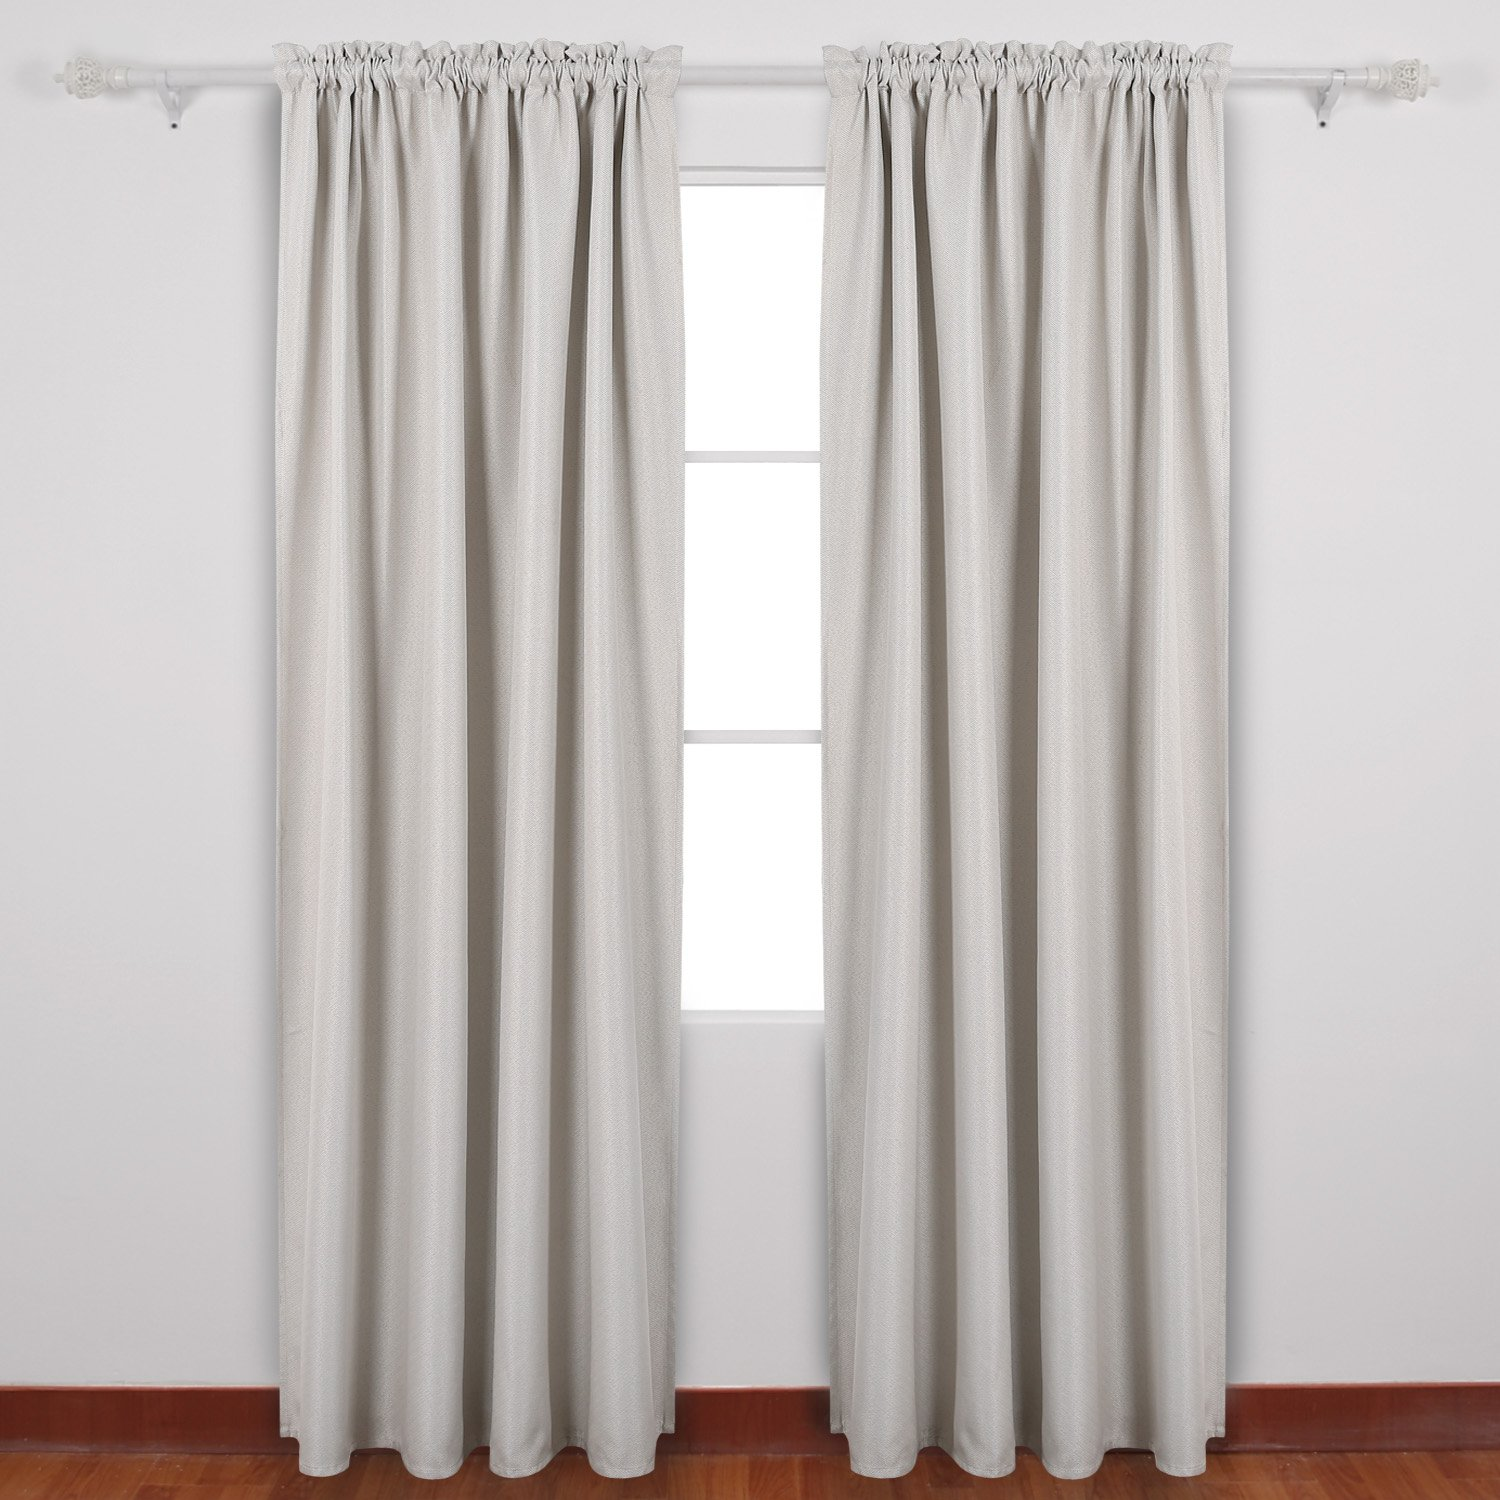 Beige Deconovo Solid Color Rod Pocket Curtains Faux Linen Curtains Thermal Insulated Room Darkening Curtains